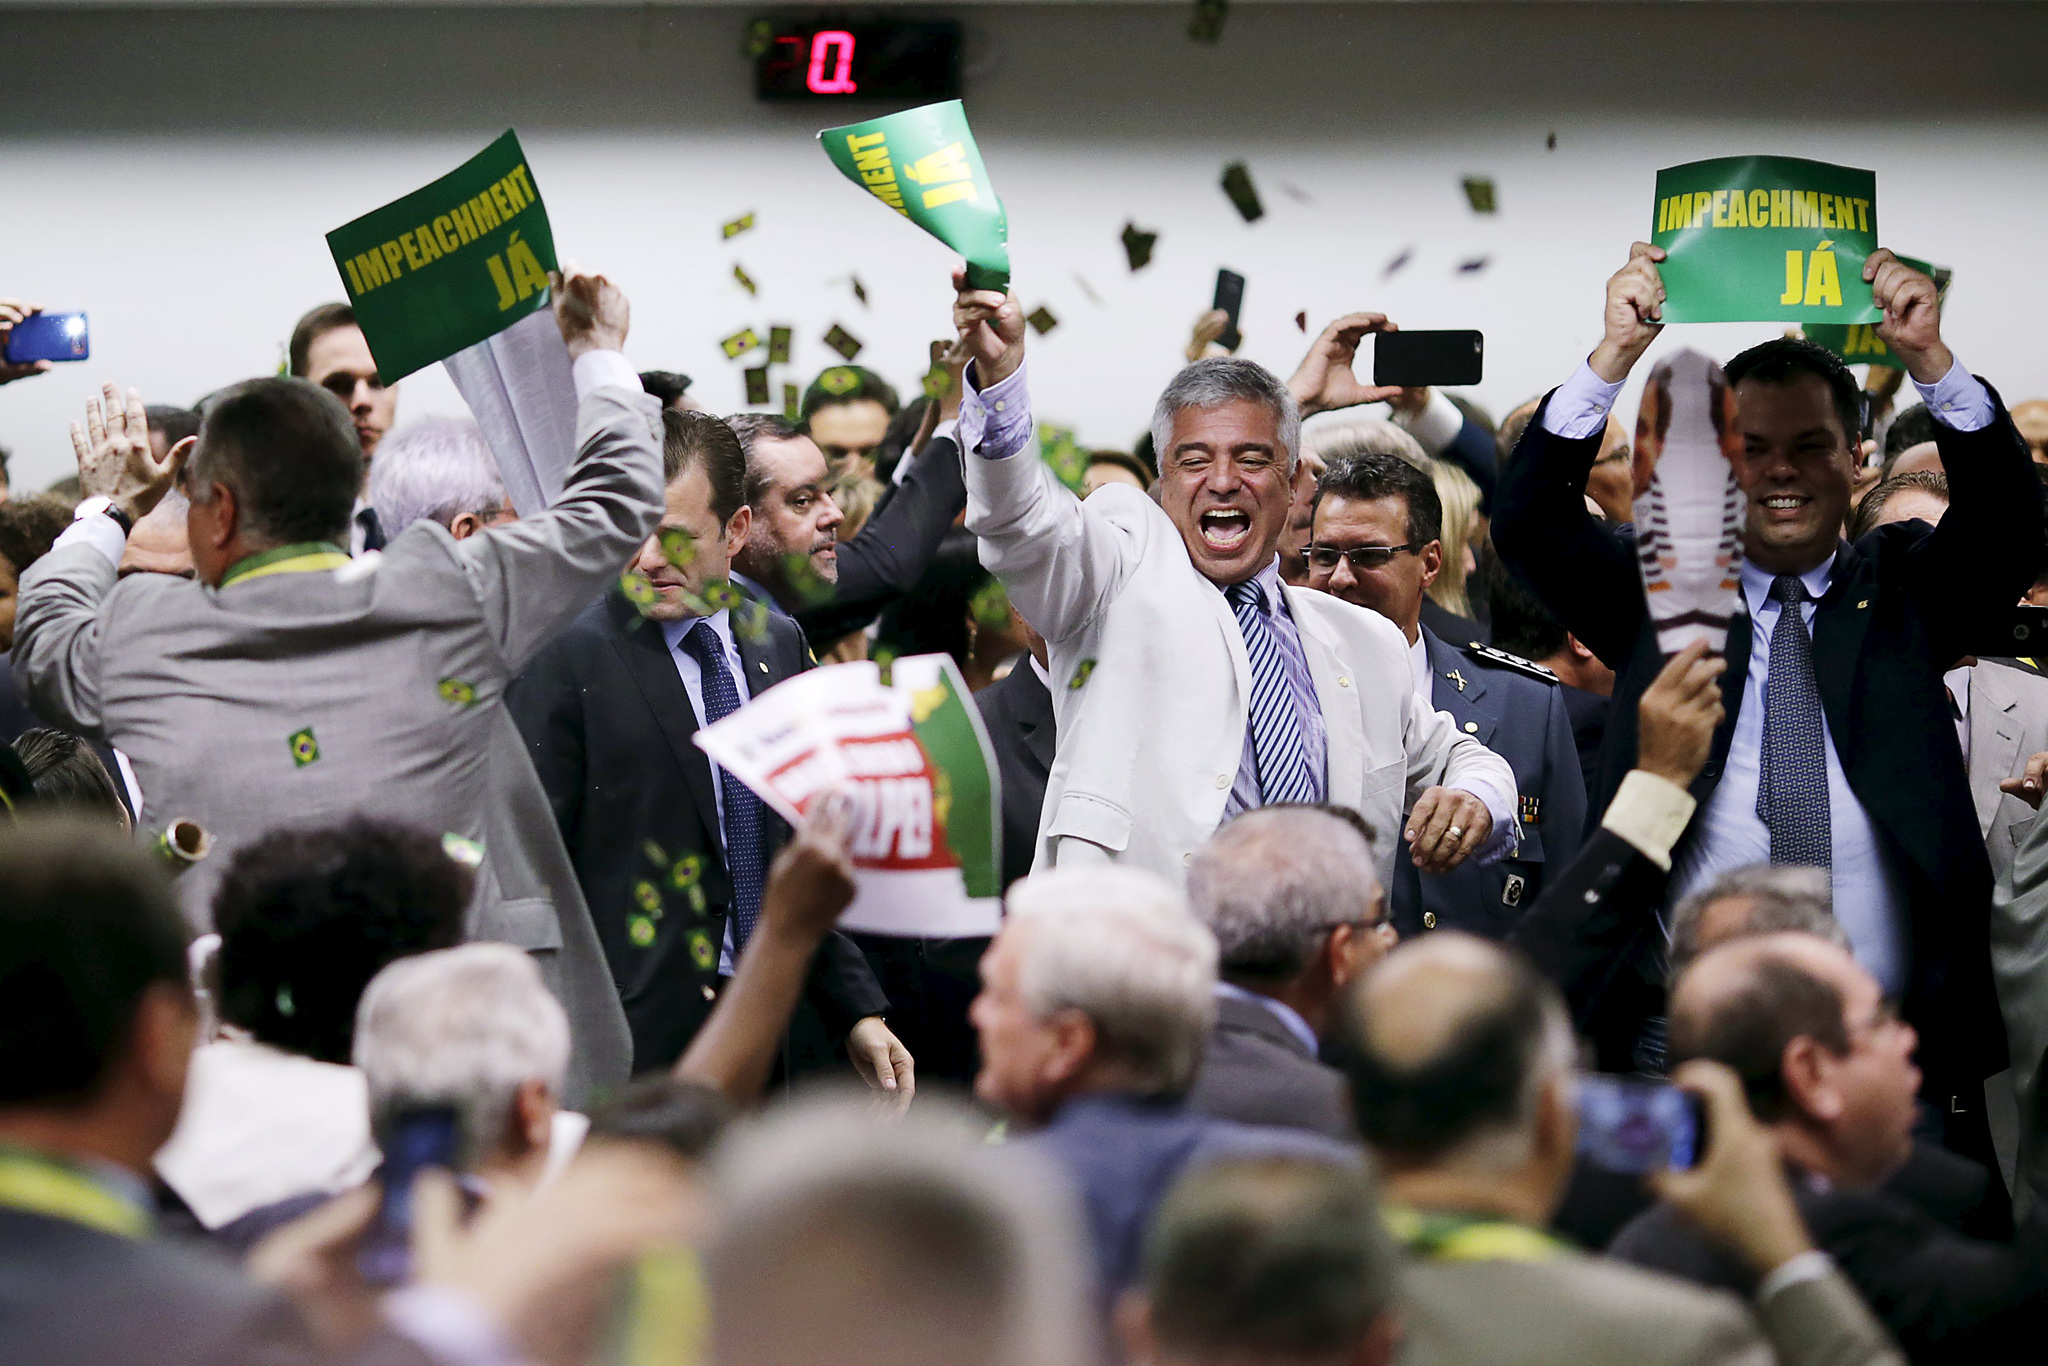 Members of the impeachment committee celebrate after voting on the impeachment of Brazilian President Dilma Rousseff at the National Congress in Brasilia...Members of the impeachment committee celebrate after voting on the impeachment of Brazilian President Dilma Rousseff at the National Congress in Brasilia, Brazil April 11, 2016. REUTERS/Ueslei Marcelino      TPX IMAGES OF THE DAY